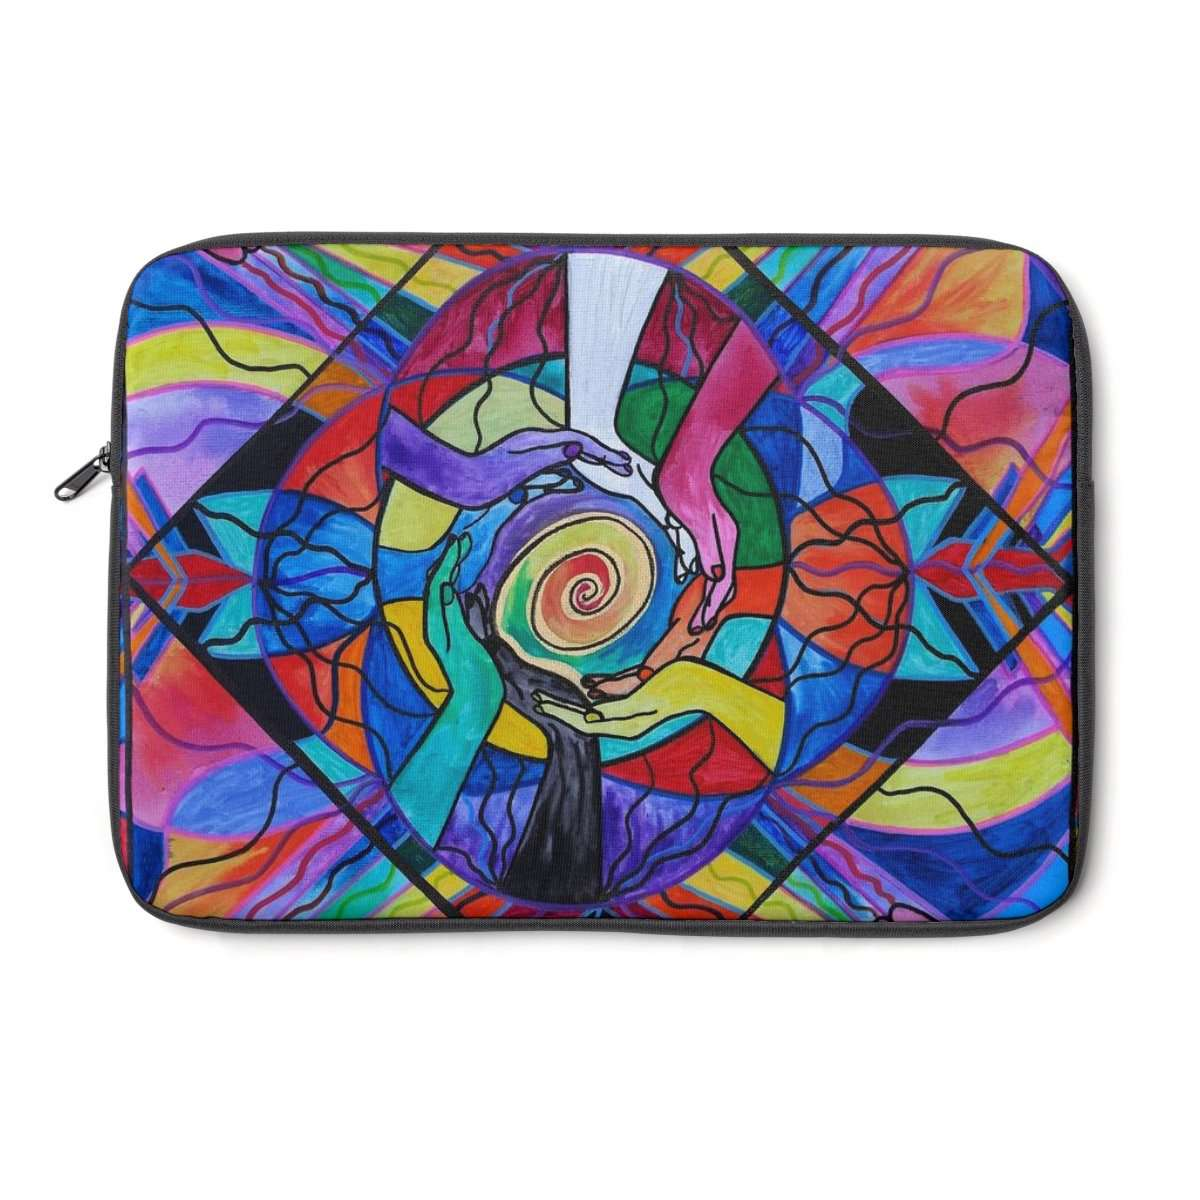 Come together - Laptop Sleeve